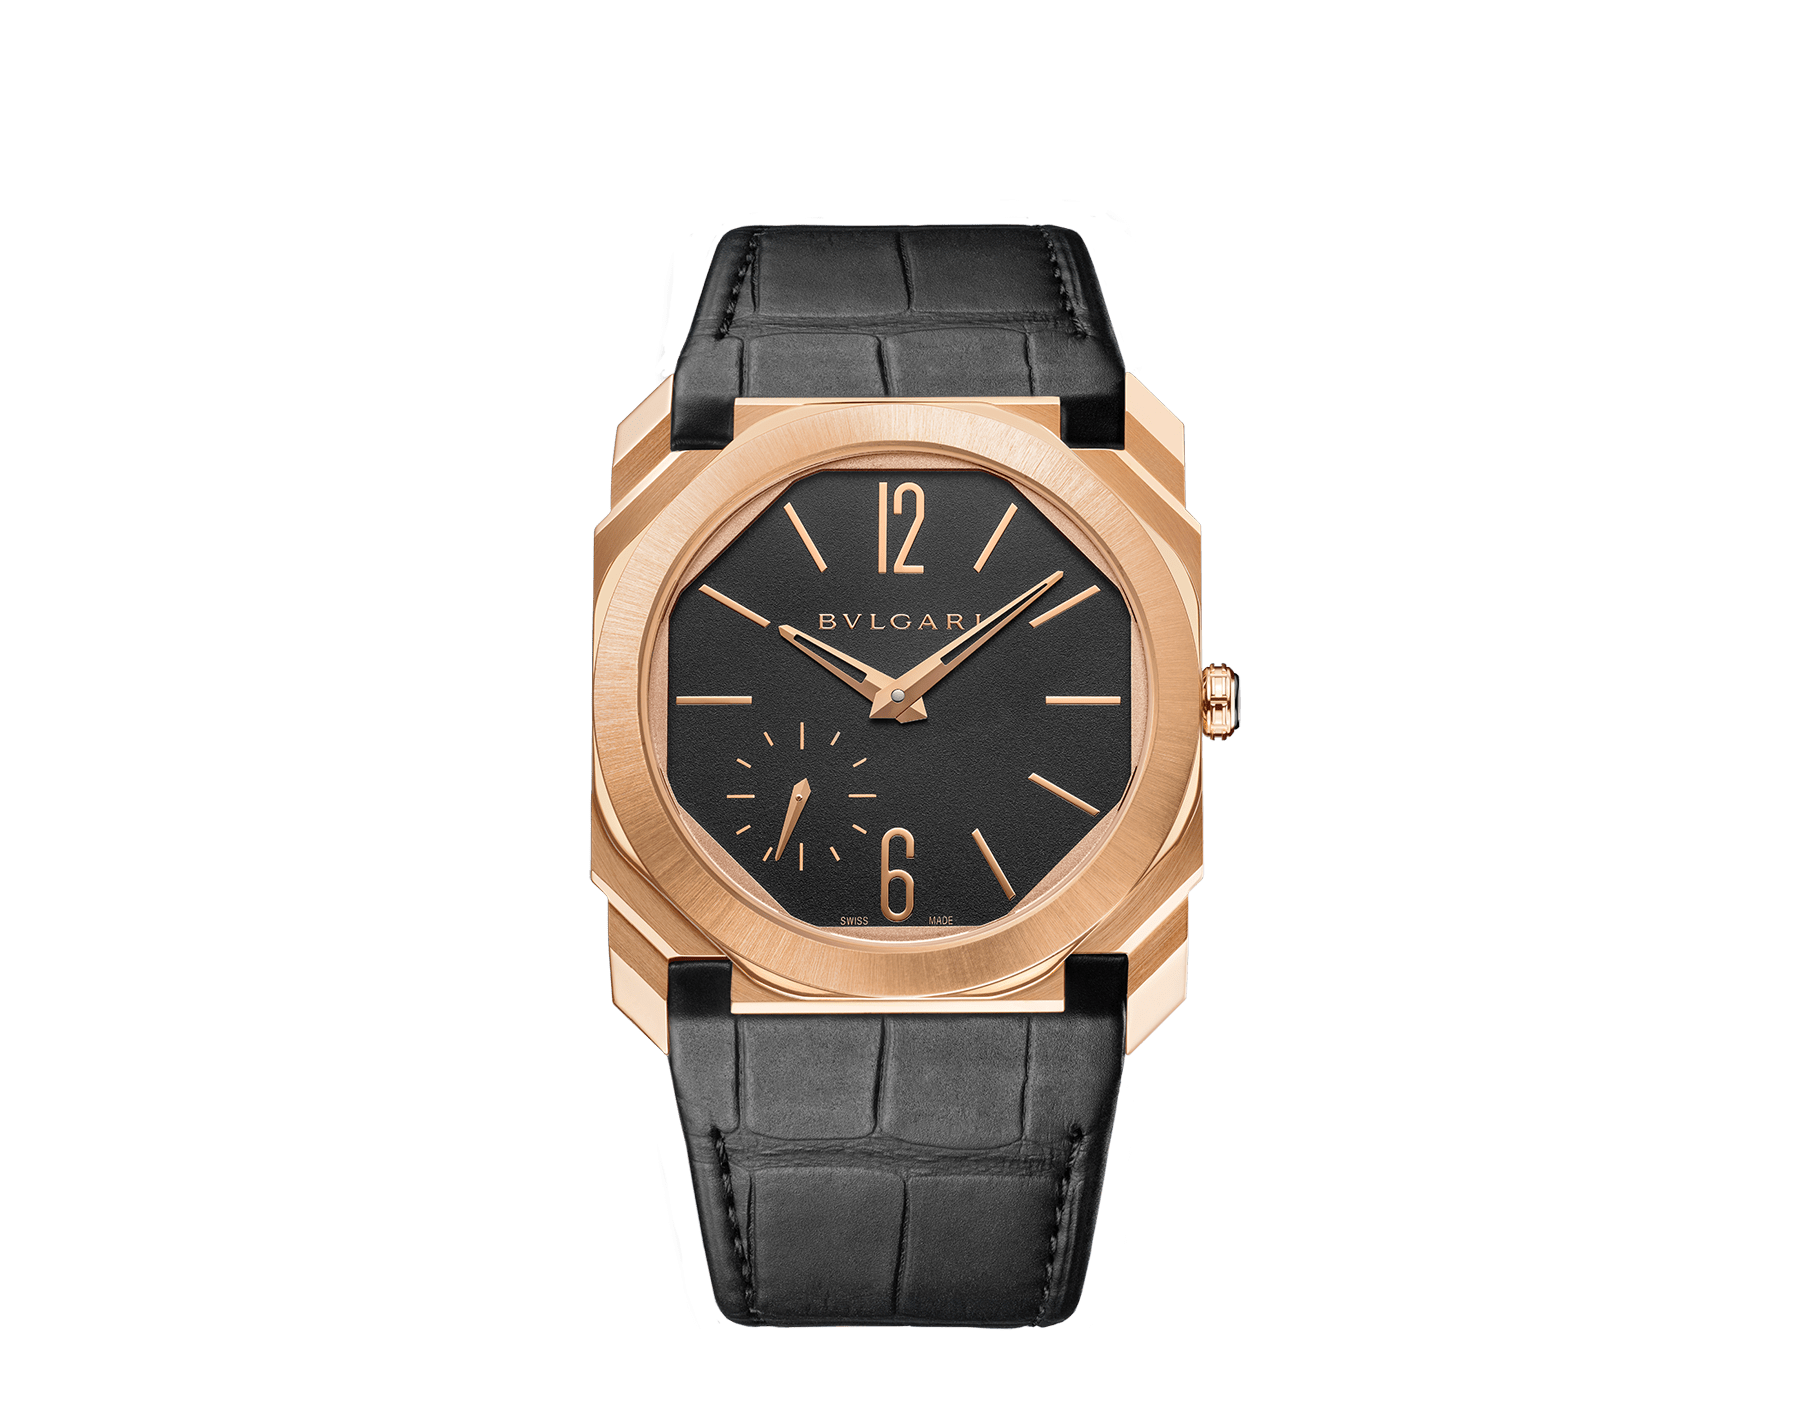 Octo Finissimo Automatic watch with mechanical manufacture movement, automatic winding, platinum micro rotor, small seconds, extra-thin 18 kt satin-polished rose gold case, transparent case back, black matte dial and black alligator bracelet. Water-resistant up to 100 meters. 103286 image 1